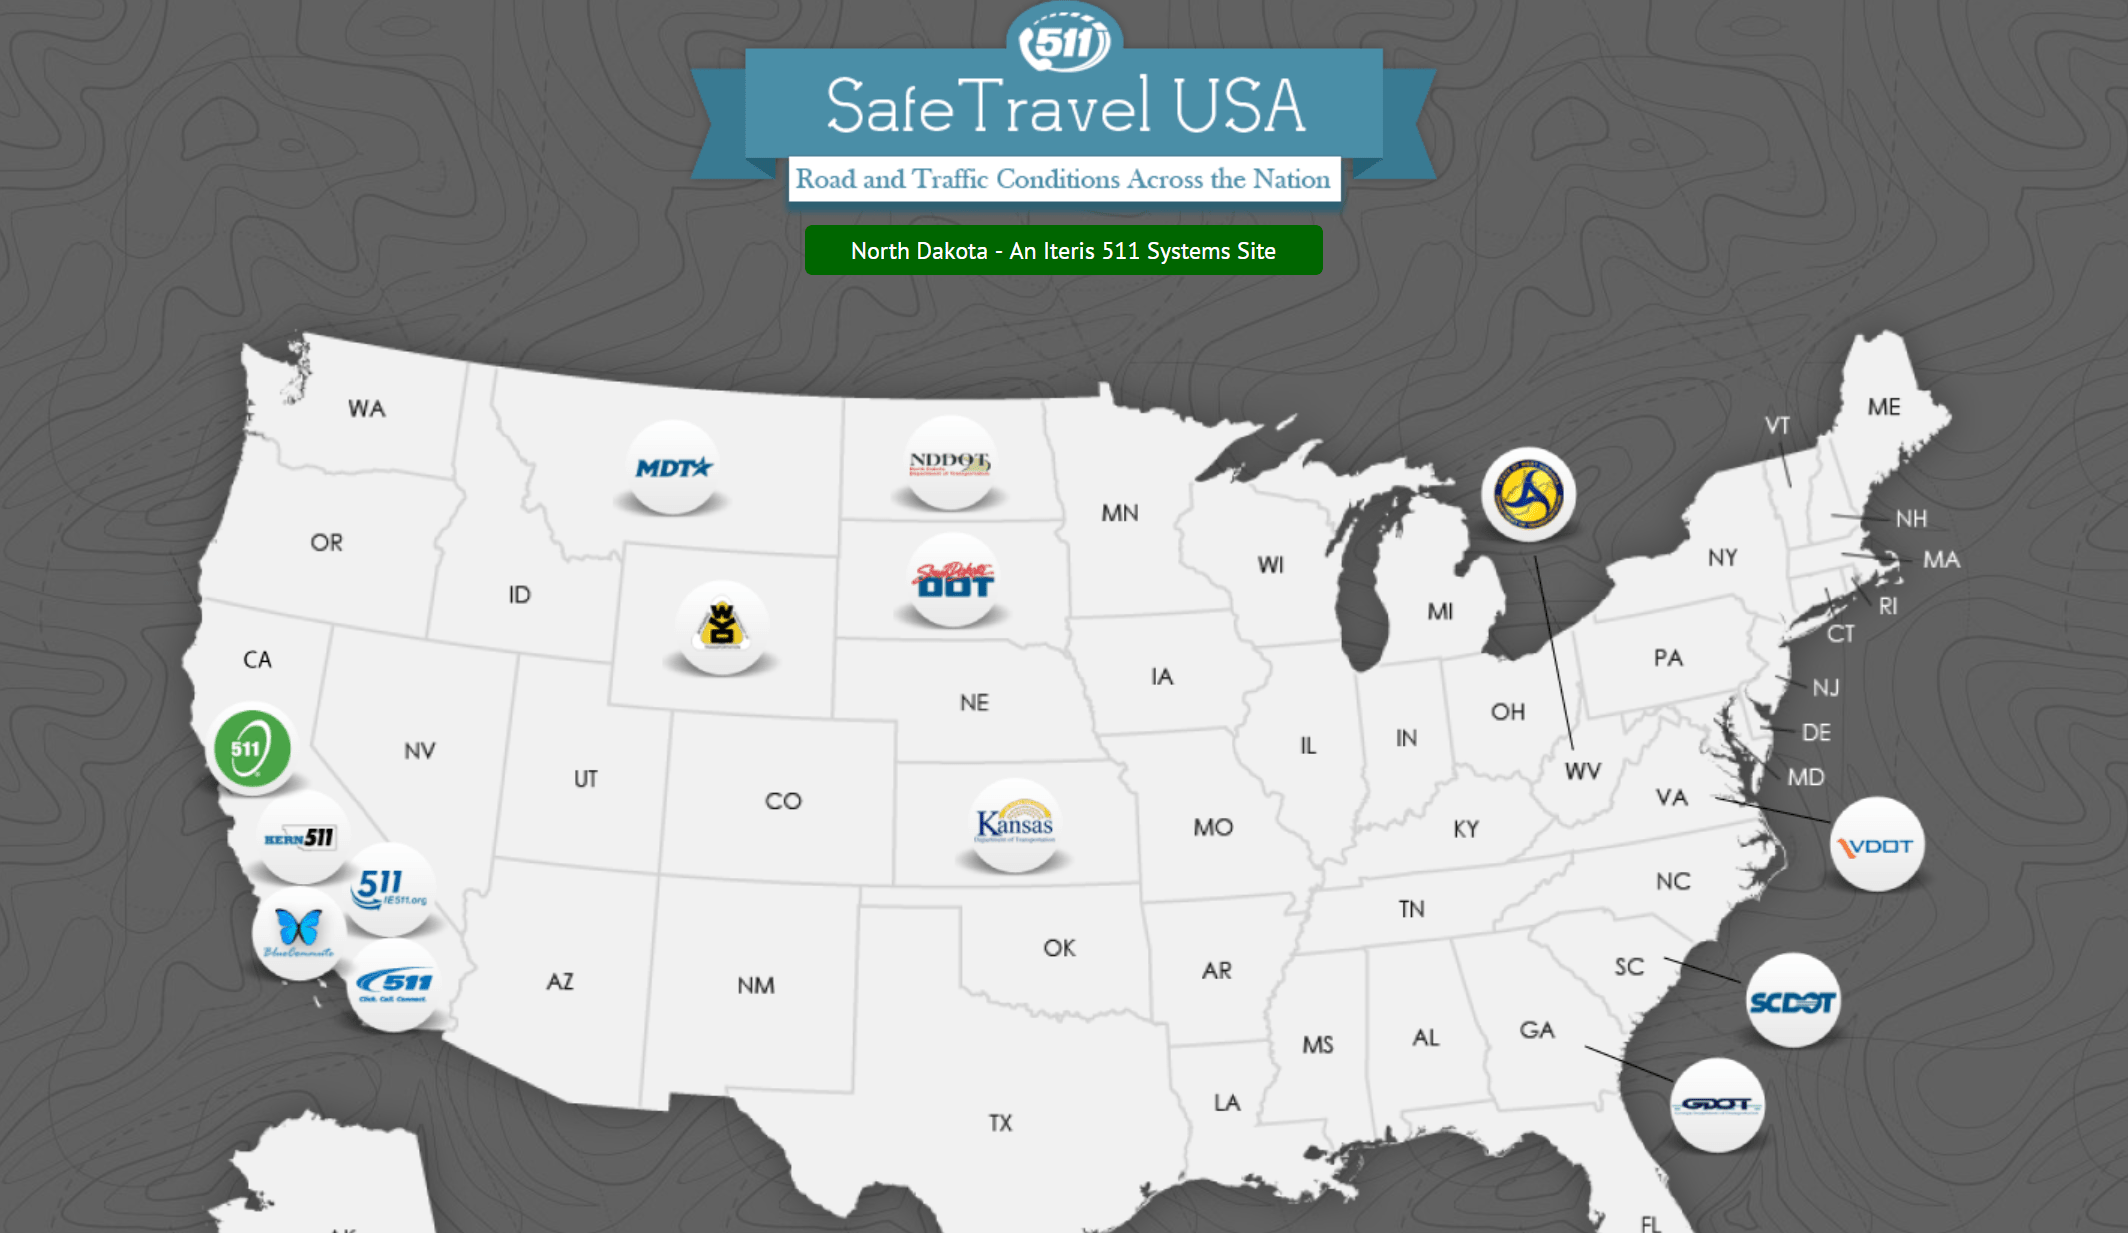 511 Safe Travel USA Map